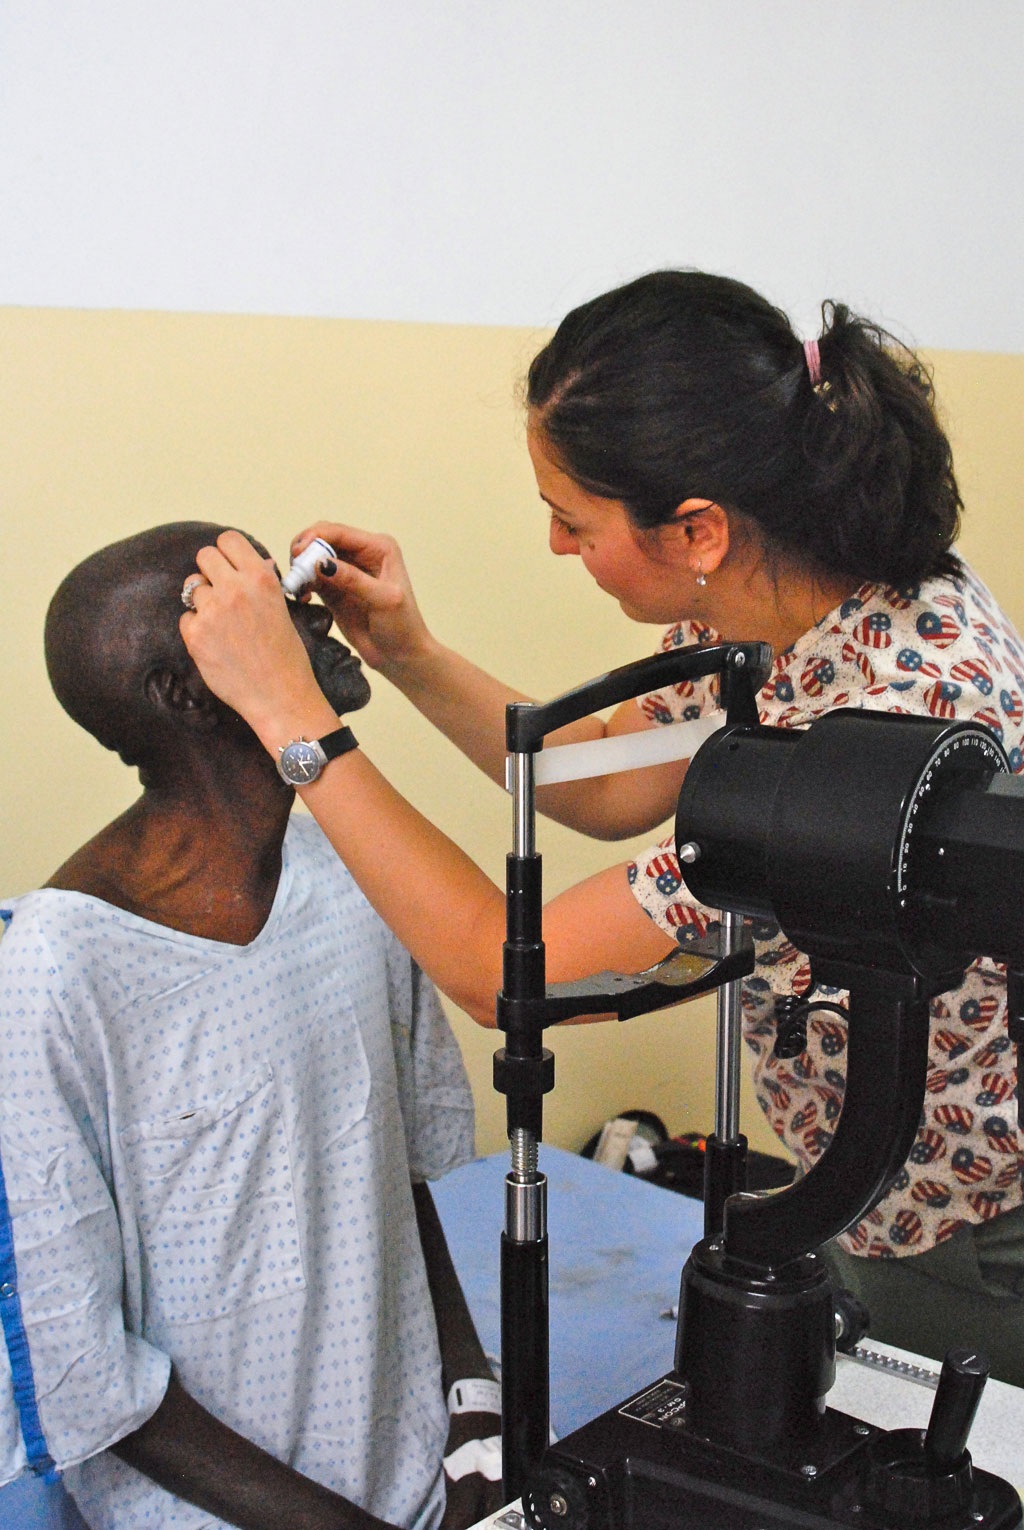 Zena applies dilating drops to a patient's eyes.